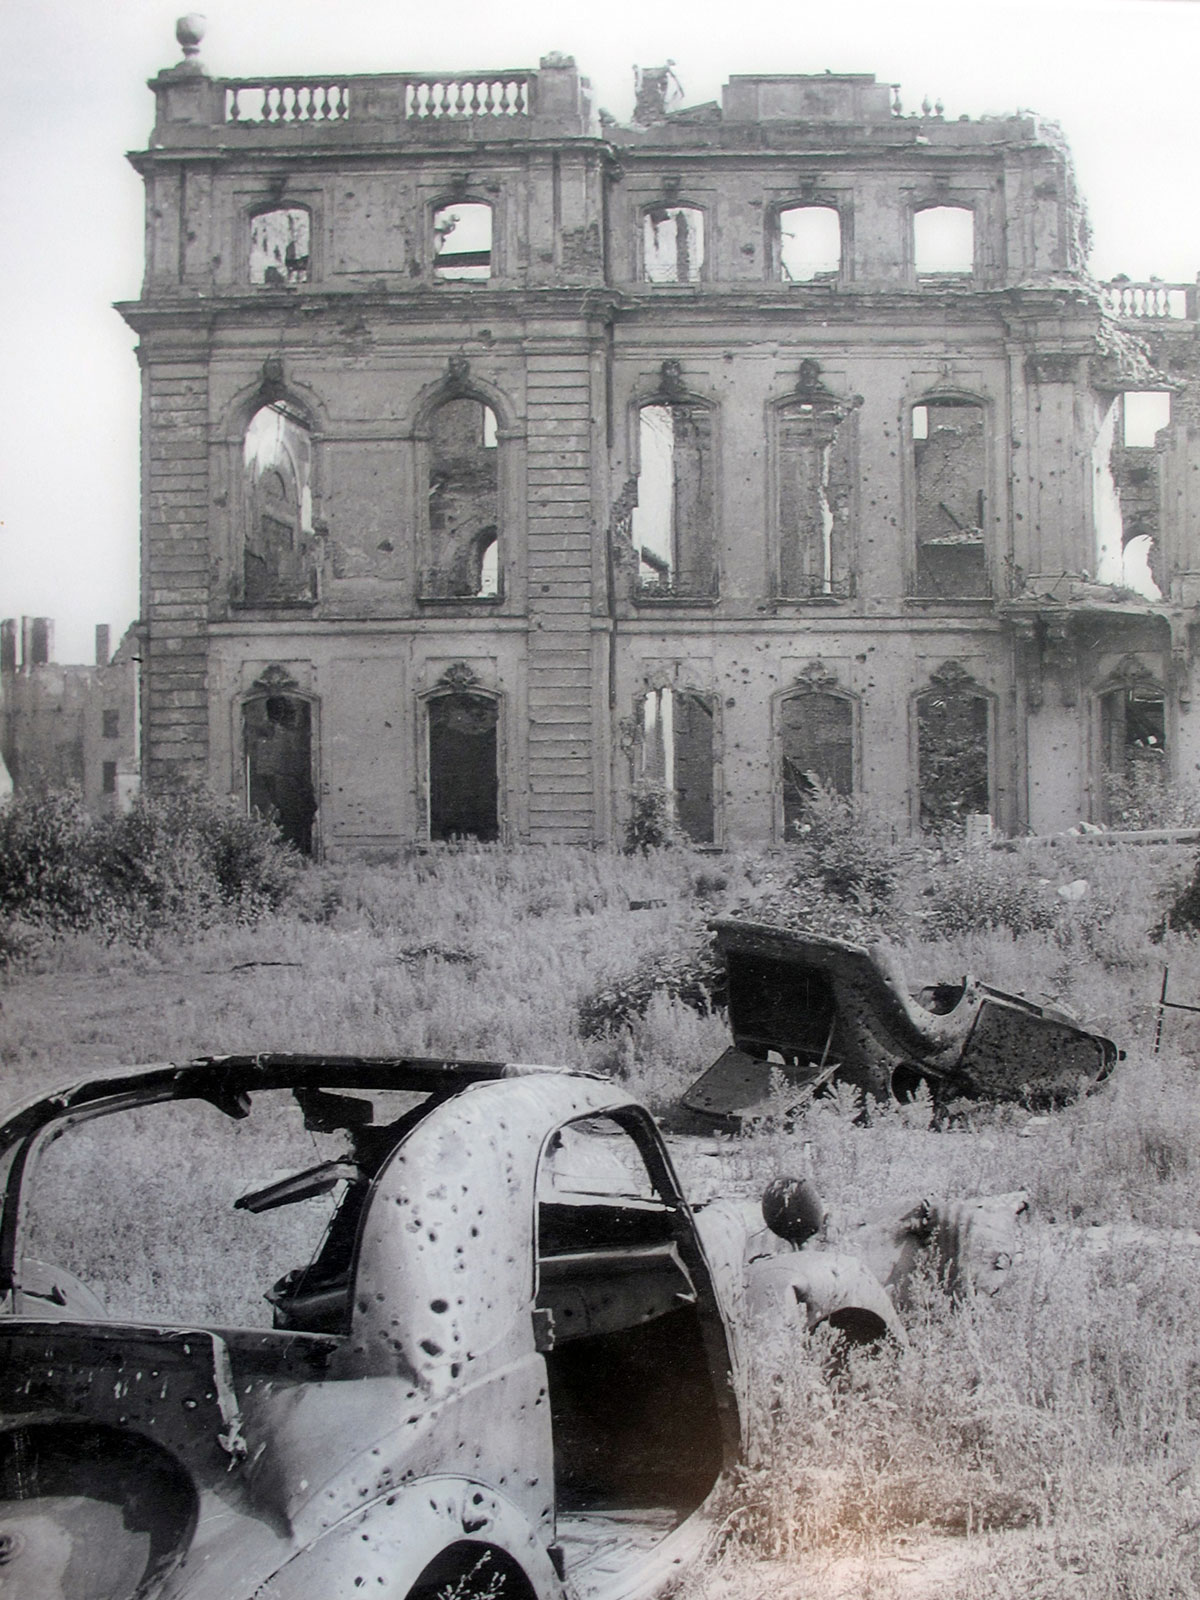 The SS Headquarters in Ruins (The former Prinz Albrecht Palais)